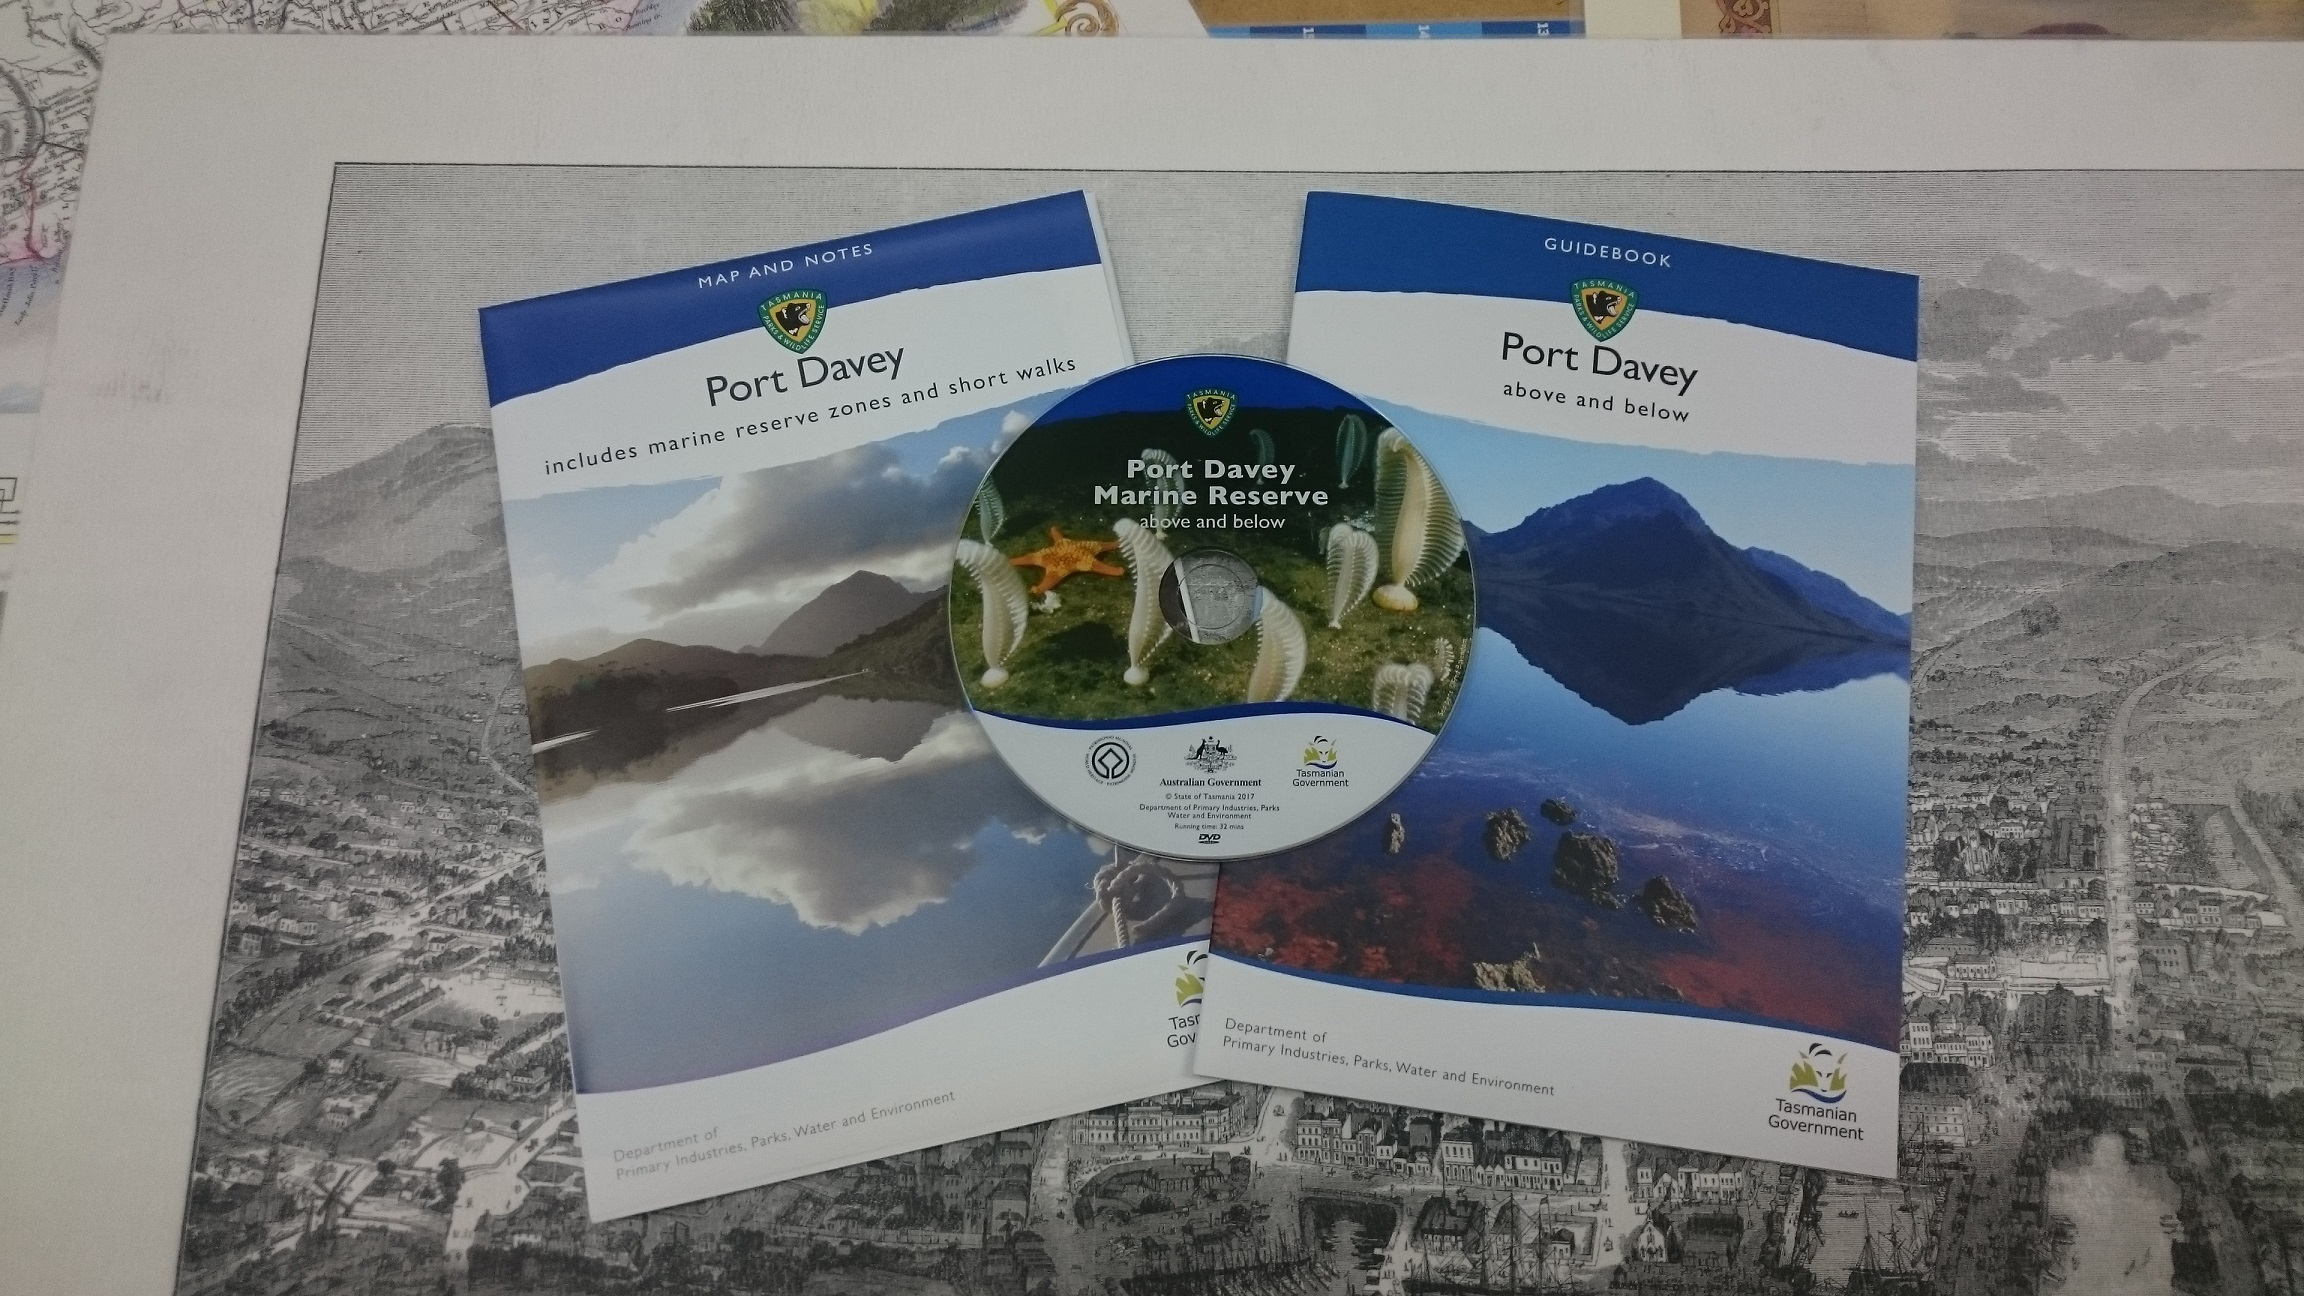 Port davey marine reserve visitors guide and map the tasmanian port davey map sample port davey map guide and dvd gumiabroncs Choice Image